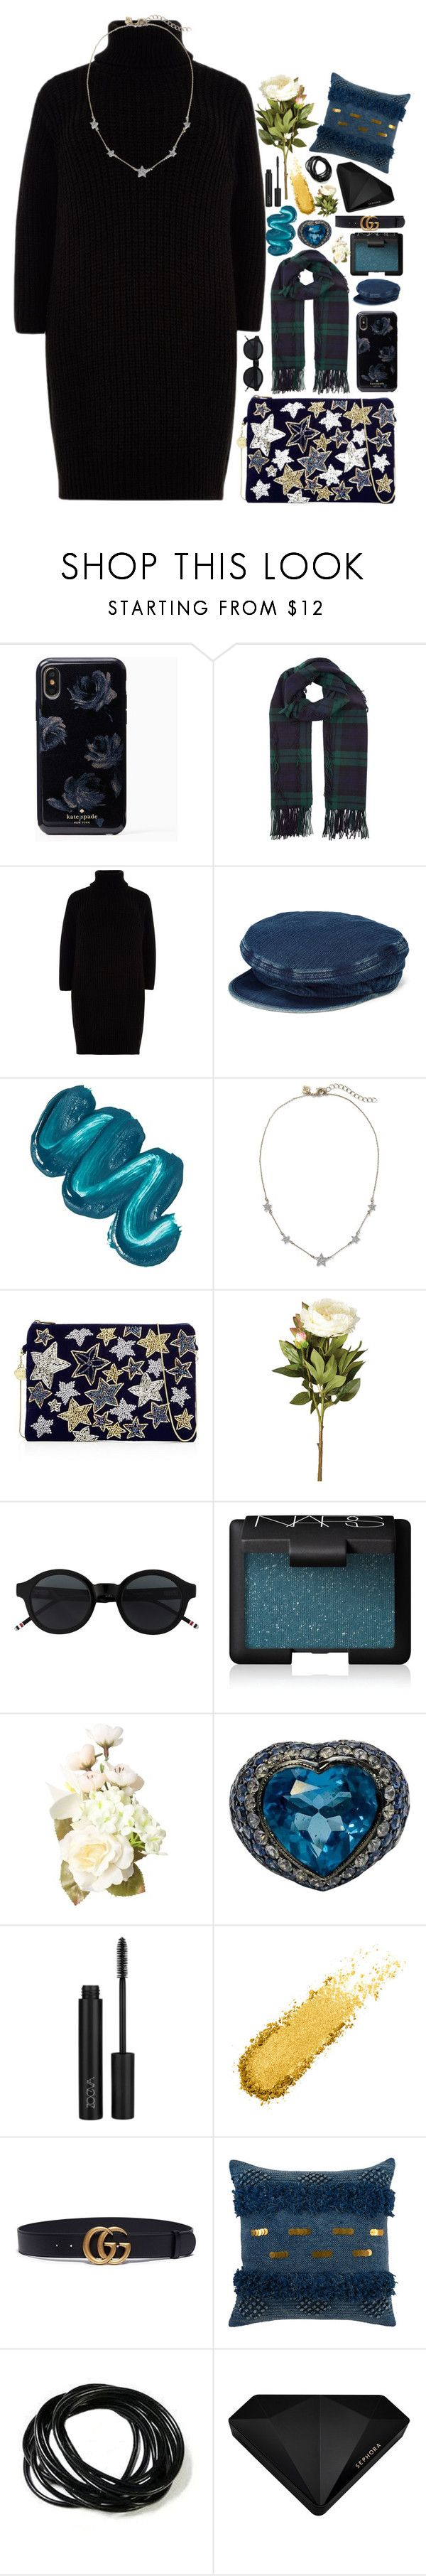 """""""baby that's what you are."""" by thaniahjcat ❤ liked on Polyvore featuring Burberry, River Island, Mermaid Salon, From St Xavier, OKA, NARS Cosmetics, ZOEVA, Gucci and Sephora Collection"""